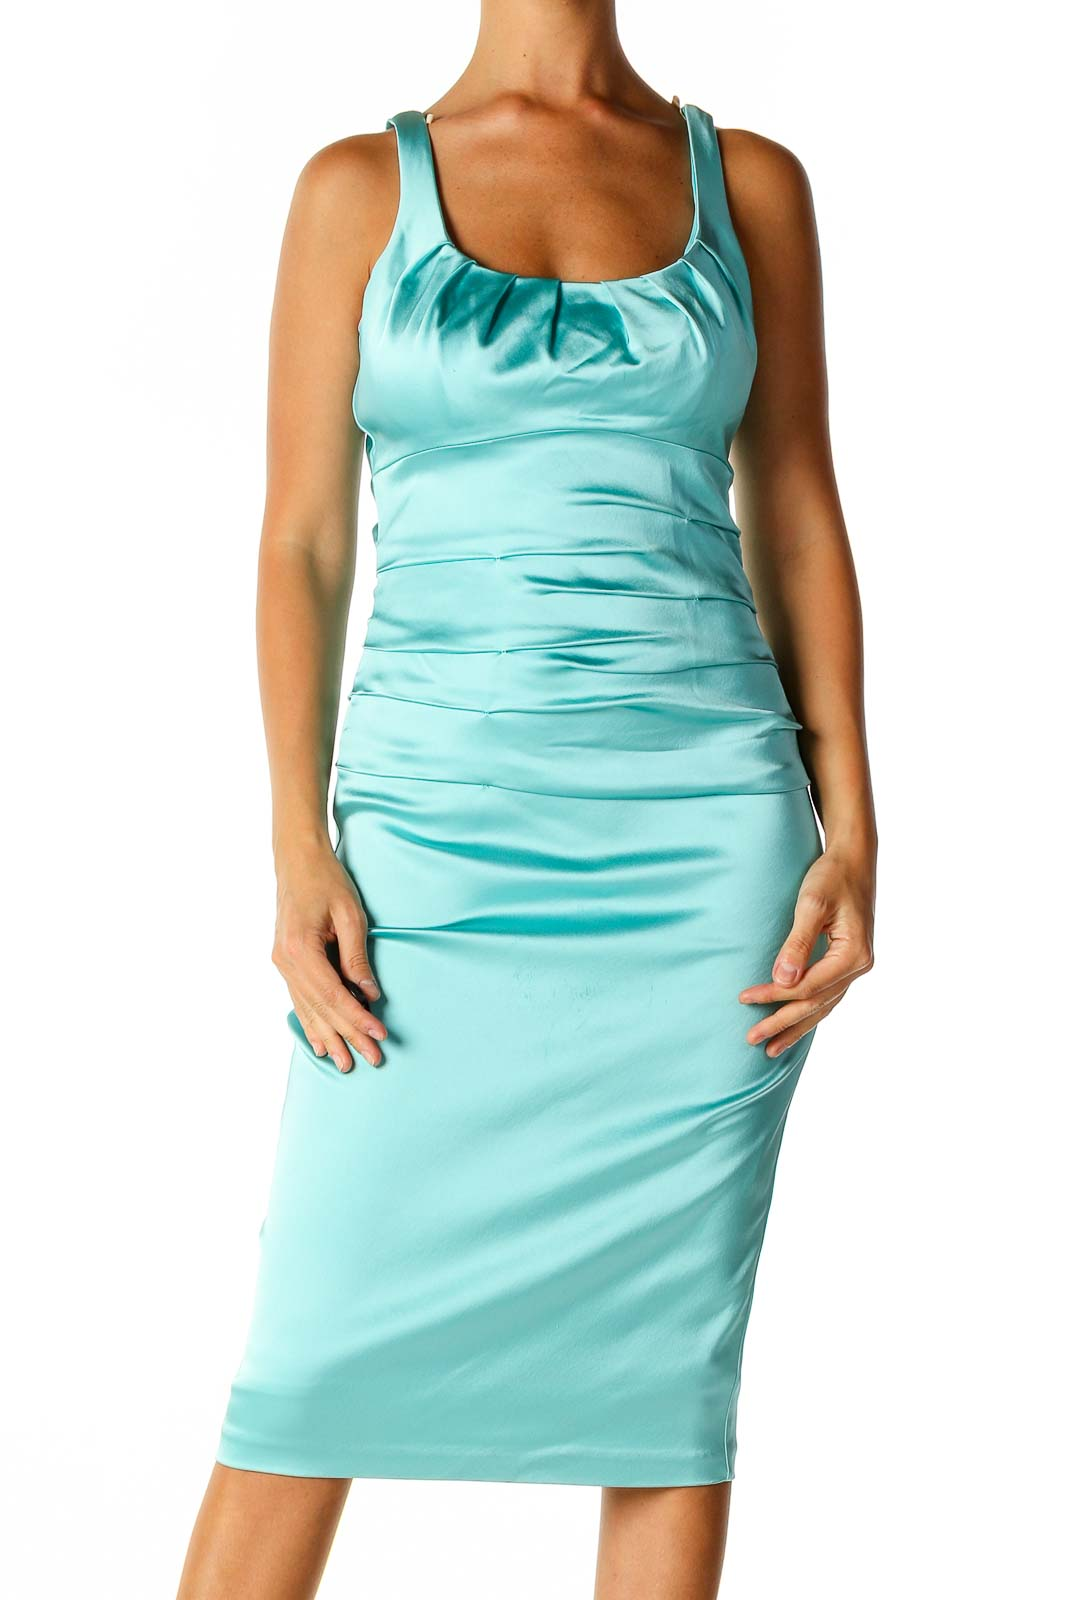 Blue Solid Retro Sheath Dress Front